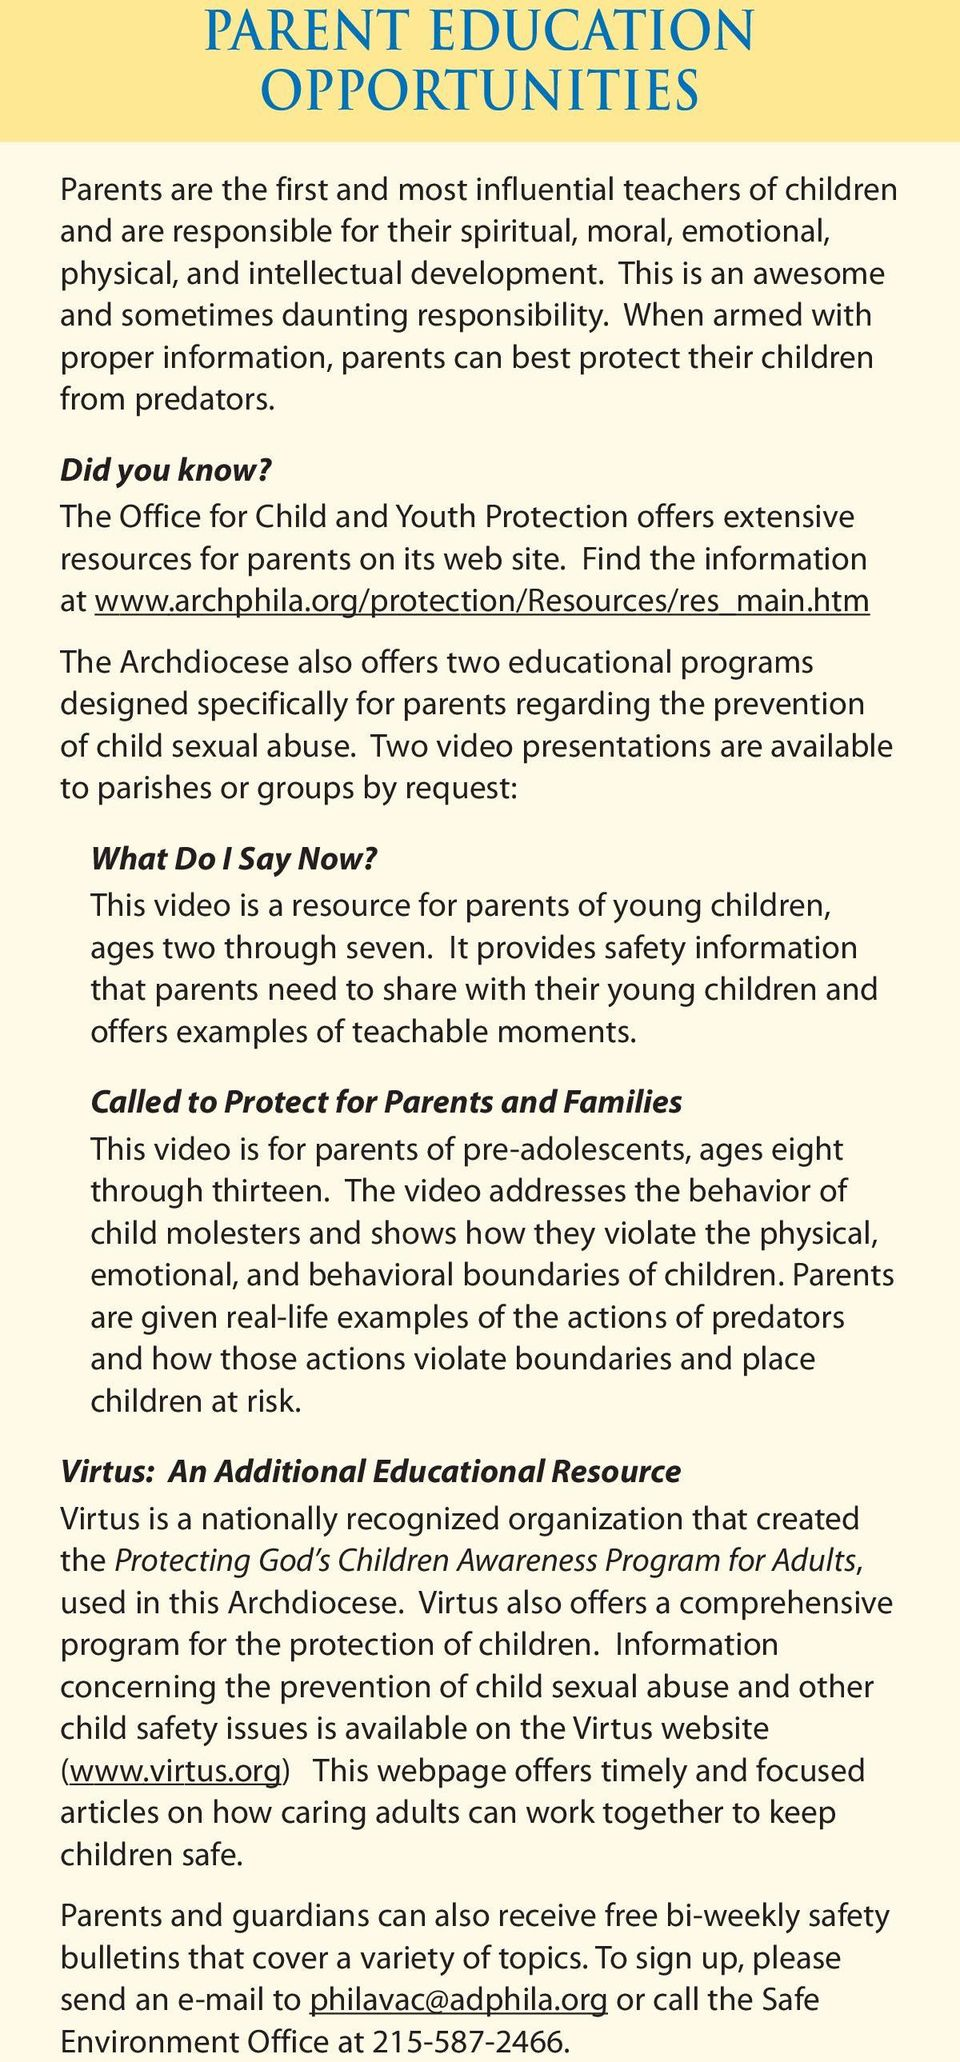 The Office for Child and Youth Protection offers extensive resources for parents on its web site. Find the information at www.archphila.org/protection/resources/res_main.